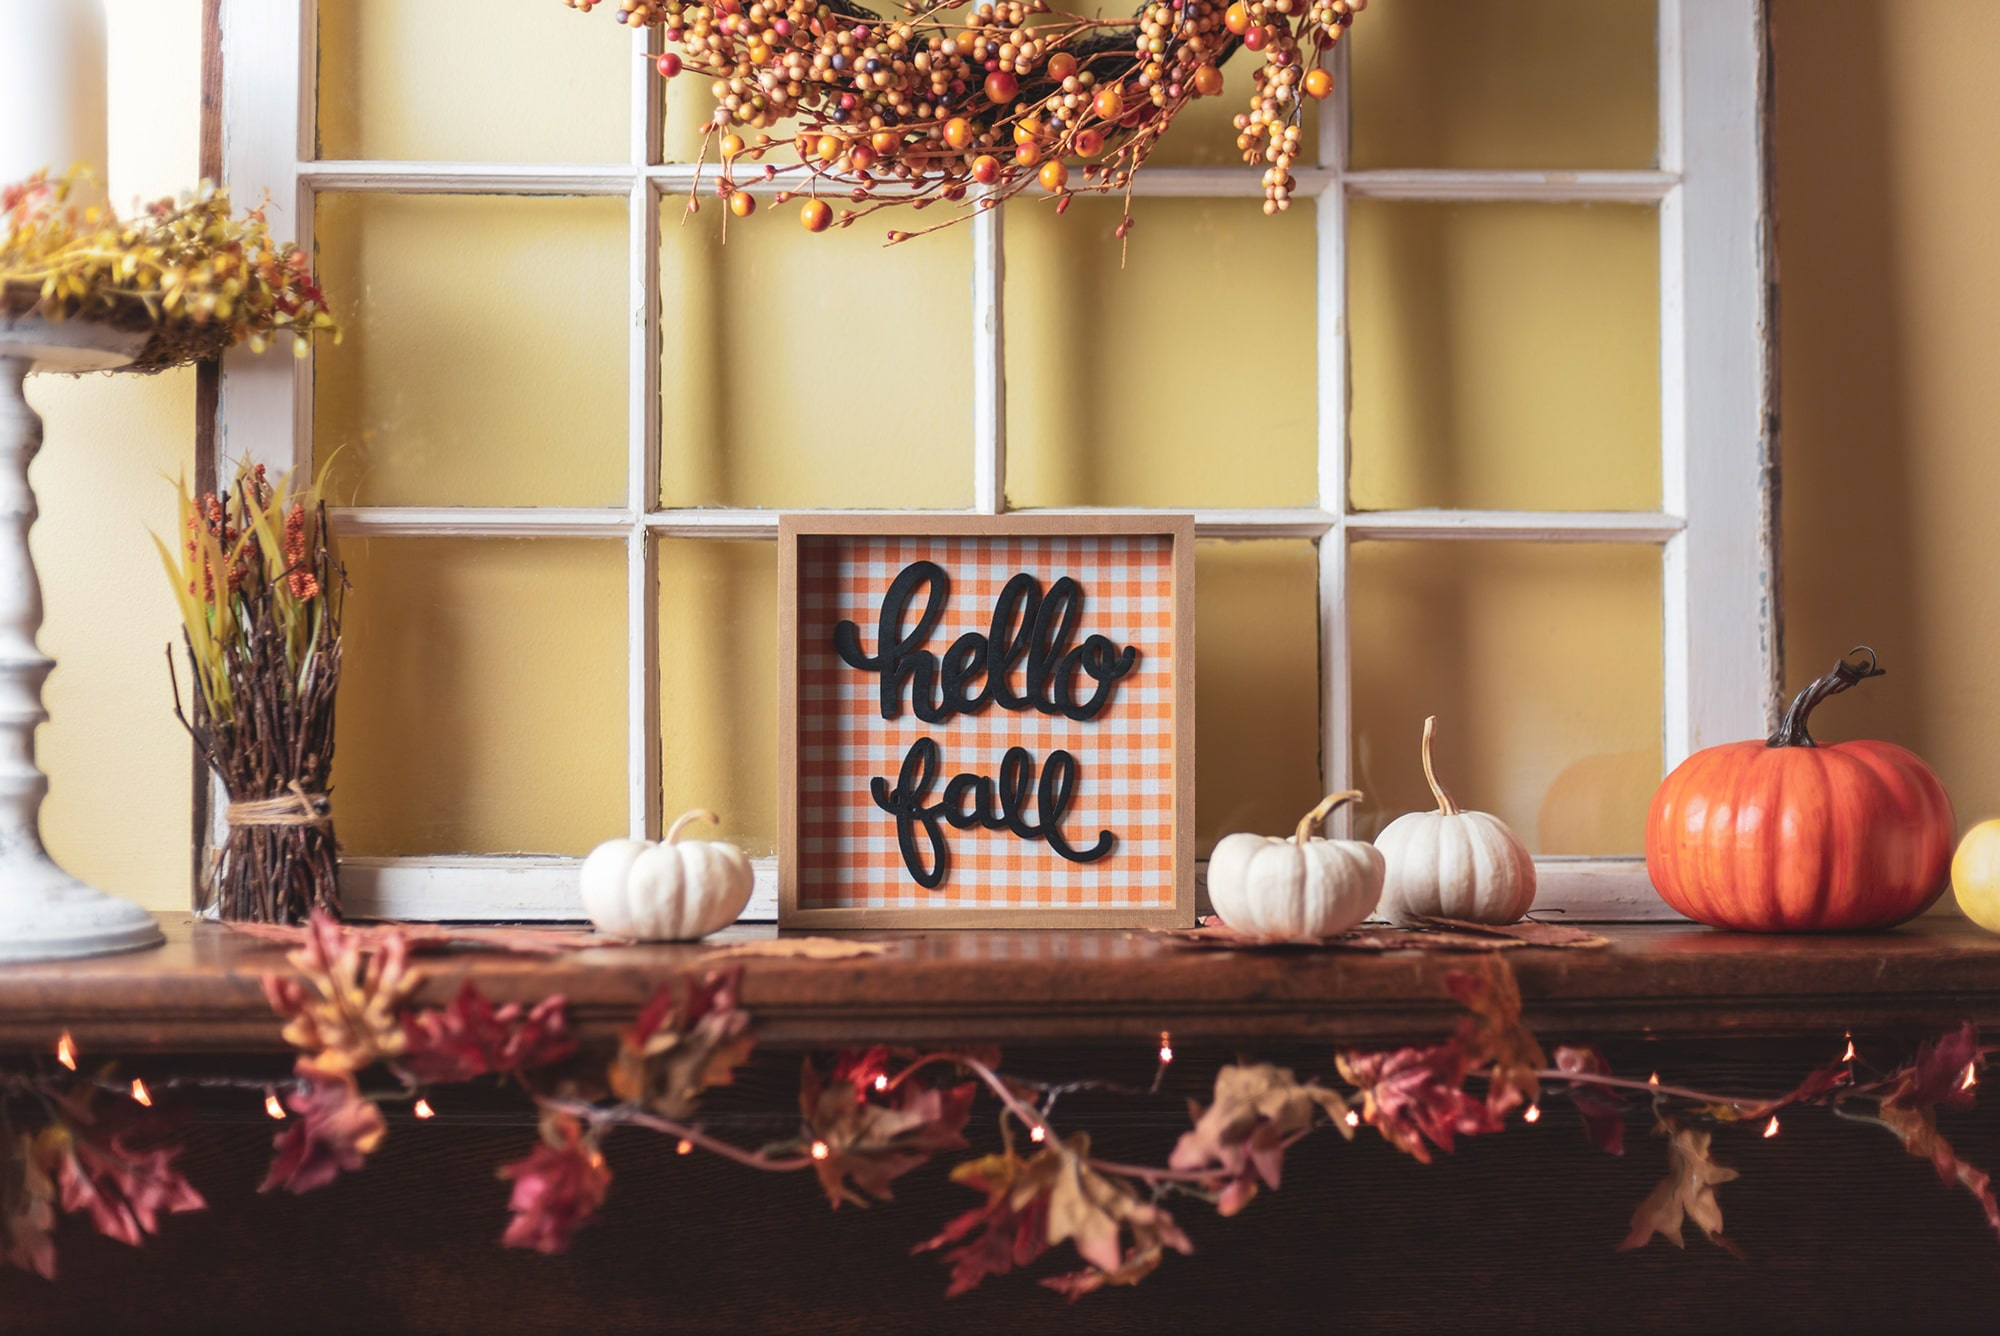 Koval fall decor ideas in Pennsylvania